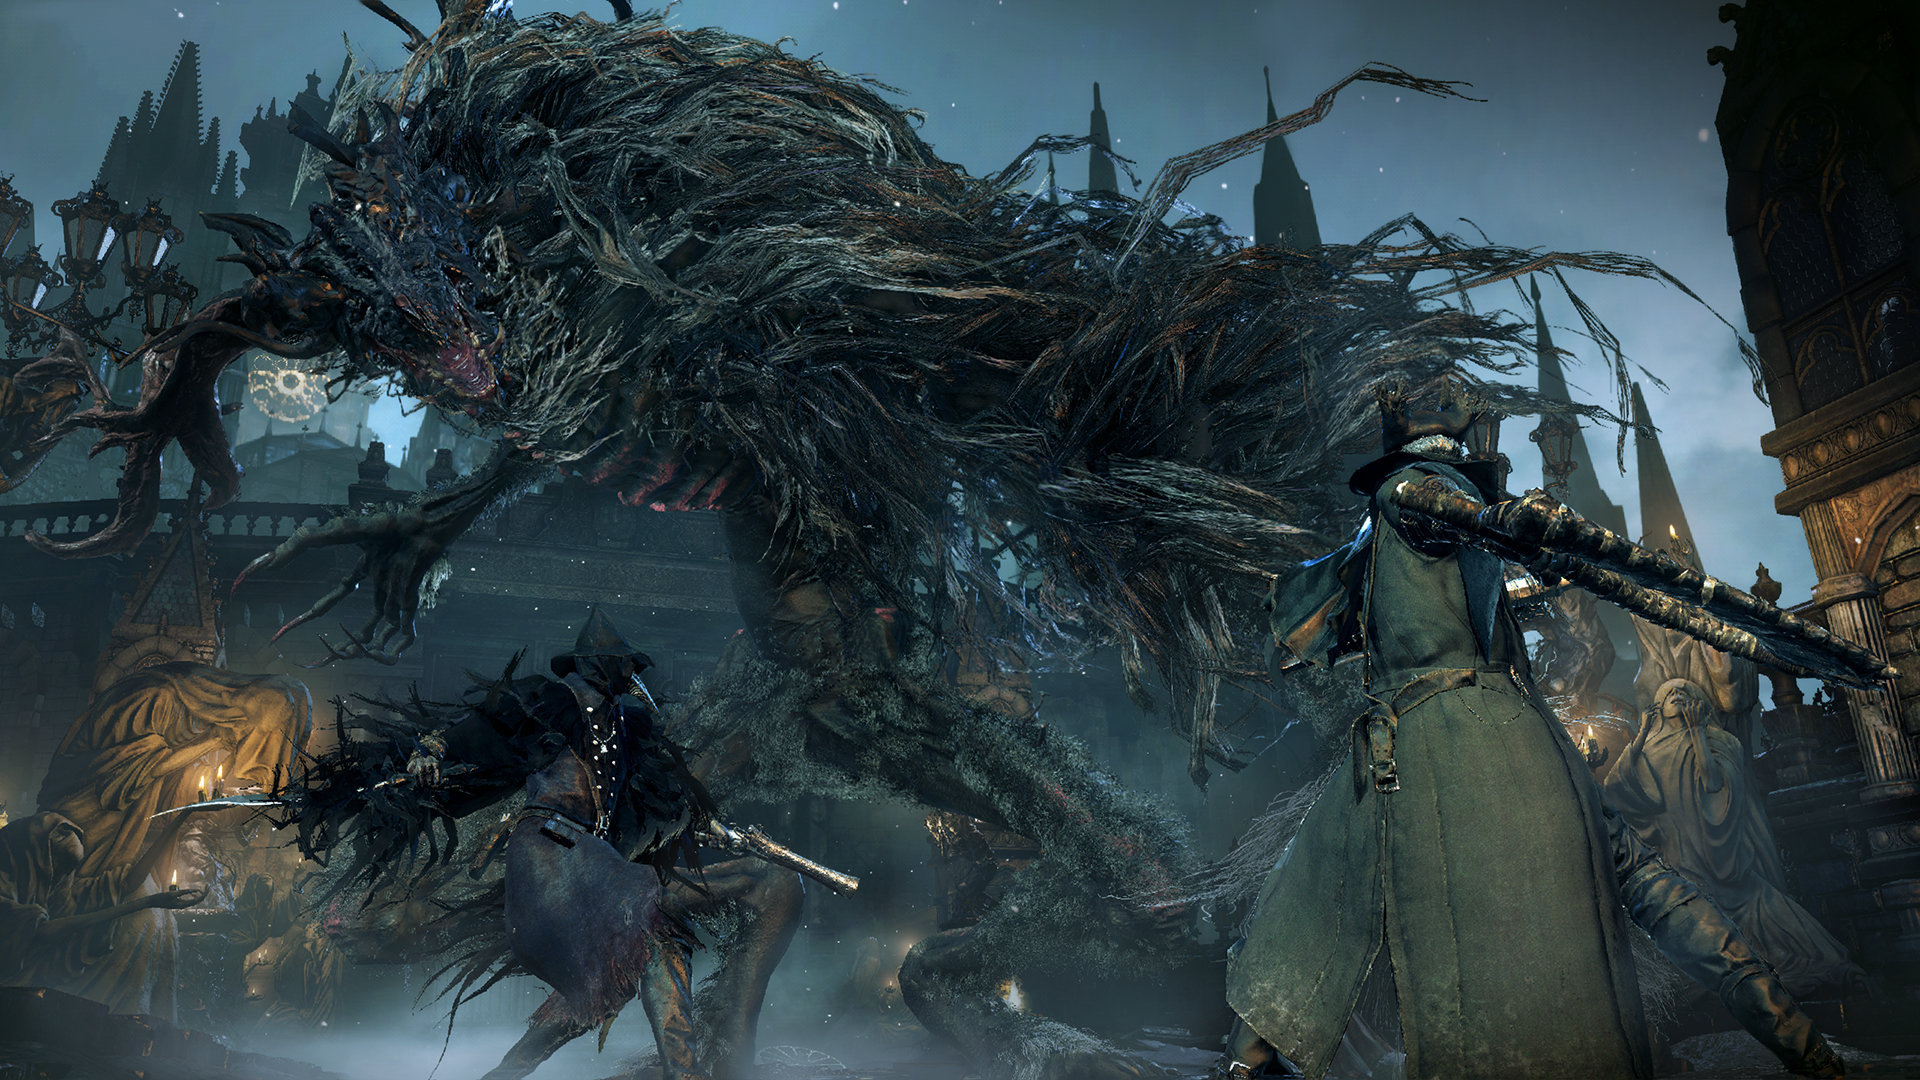 Bloodborne's combat pushed you to run into fights